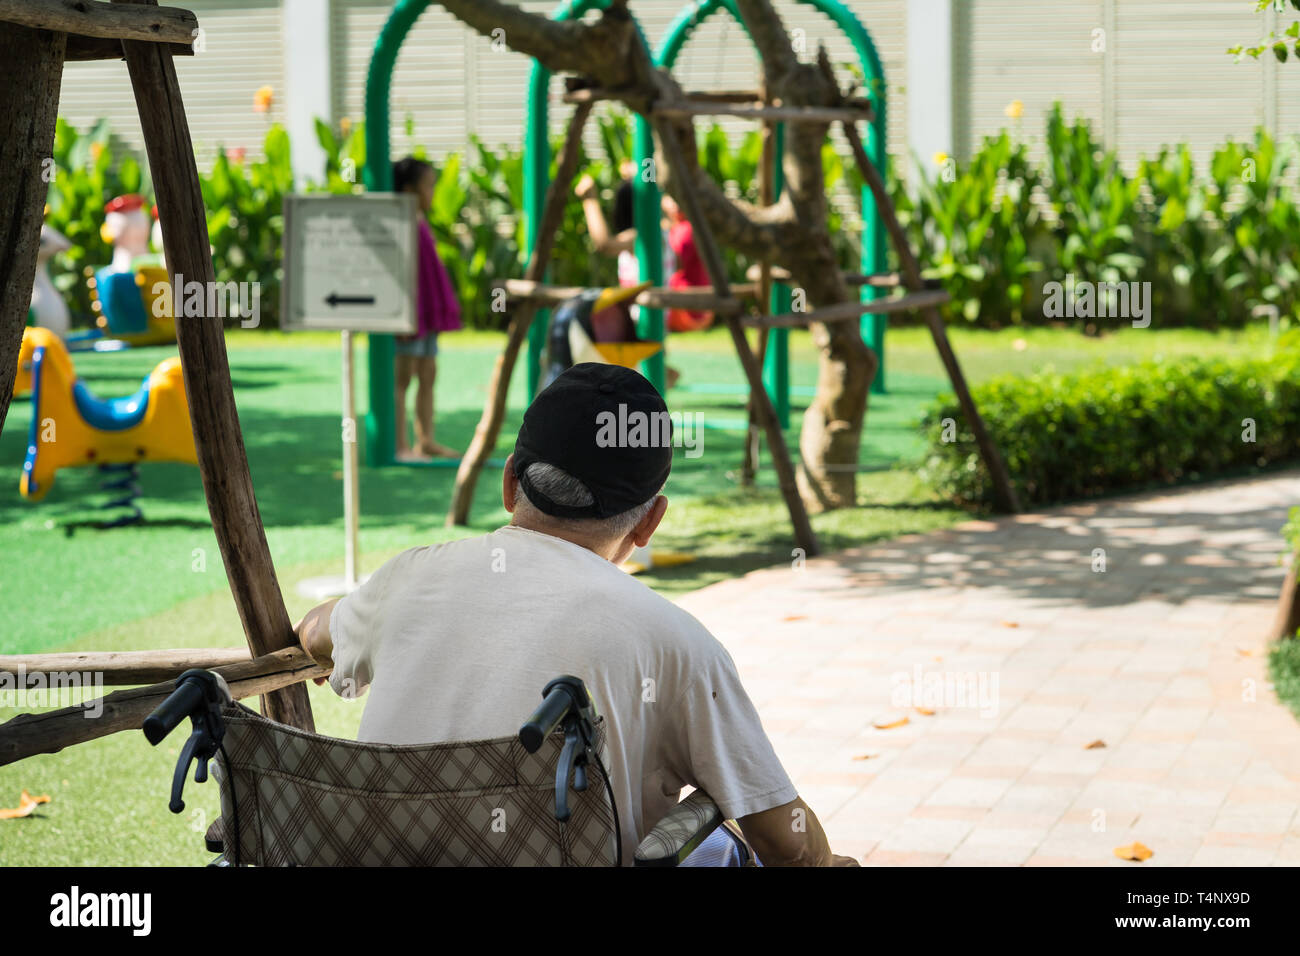 Old man sits on wheelchair looking at children playing on playground. Concept of youth recall, taking care of children. - Stock Image